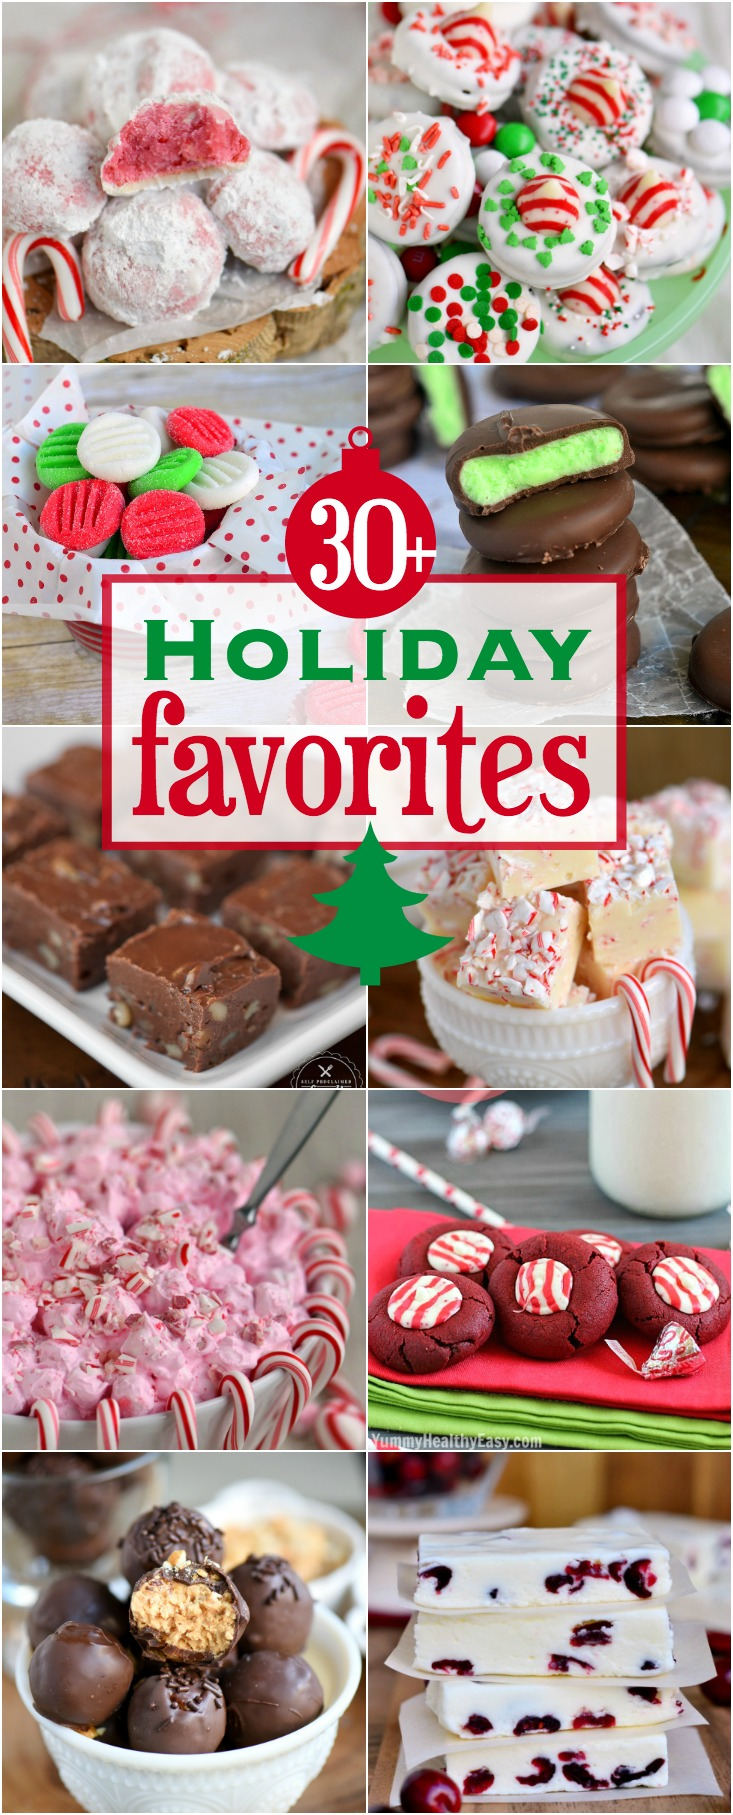 Find your new holiday favorites here! Candies, cookies, desserts, appetizers, and more! A delicious round-up featuring the best of the holidays! // Mom On Timeout